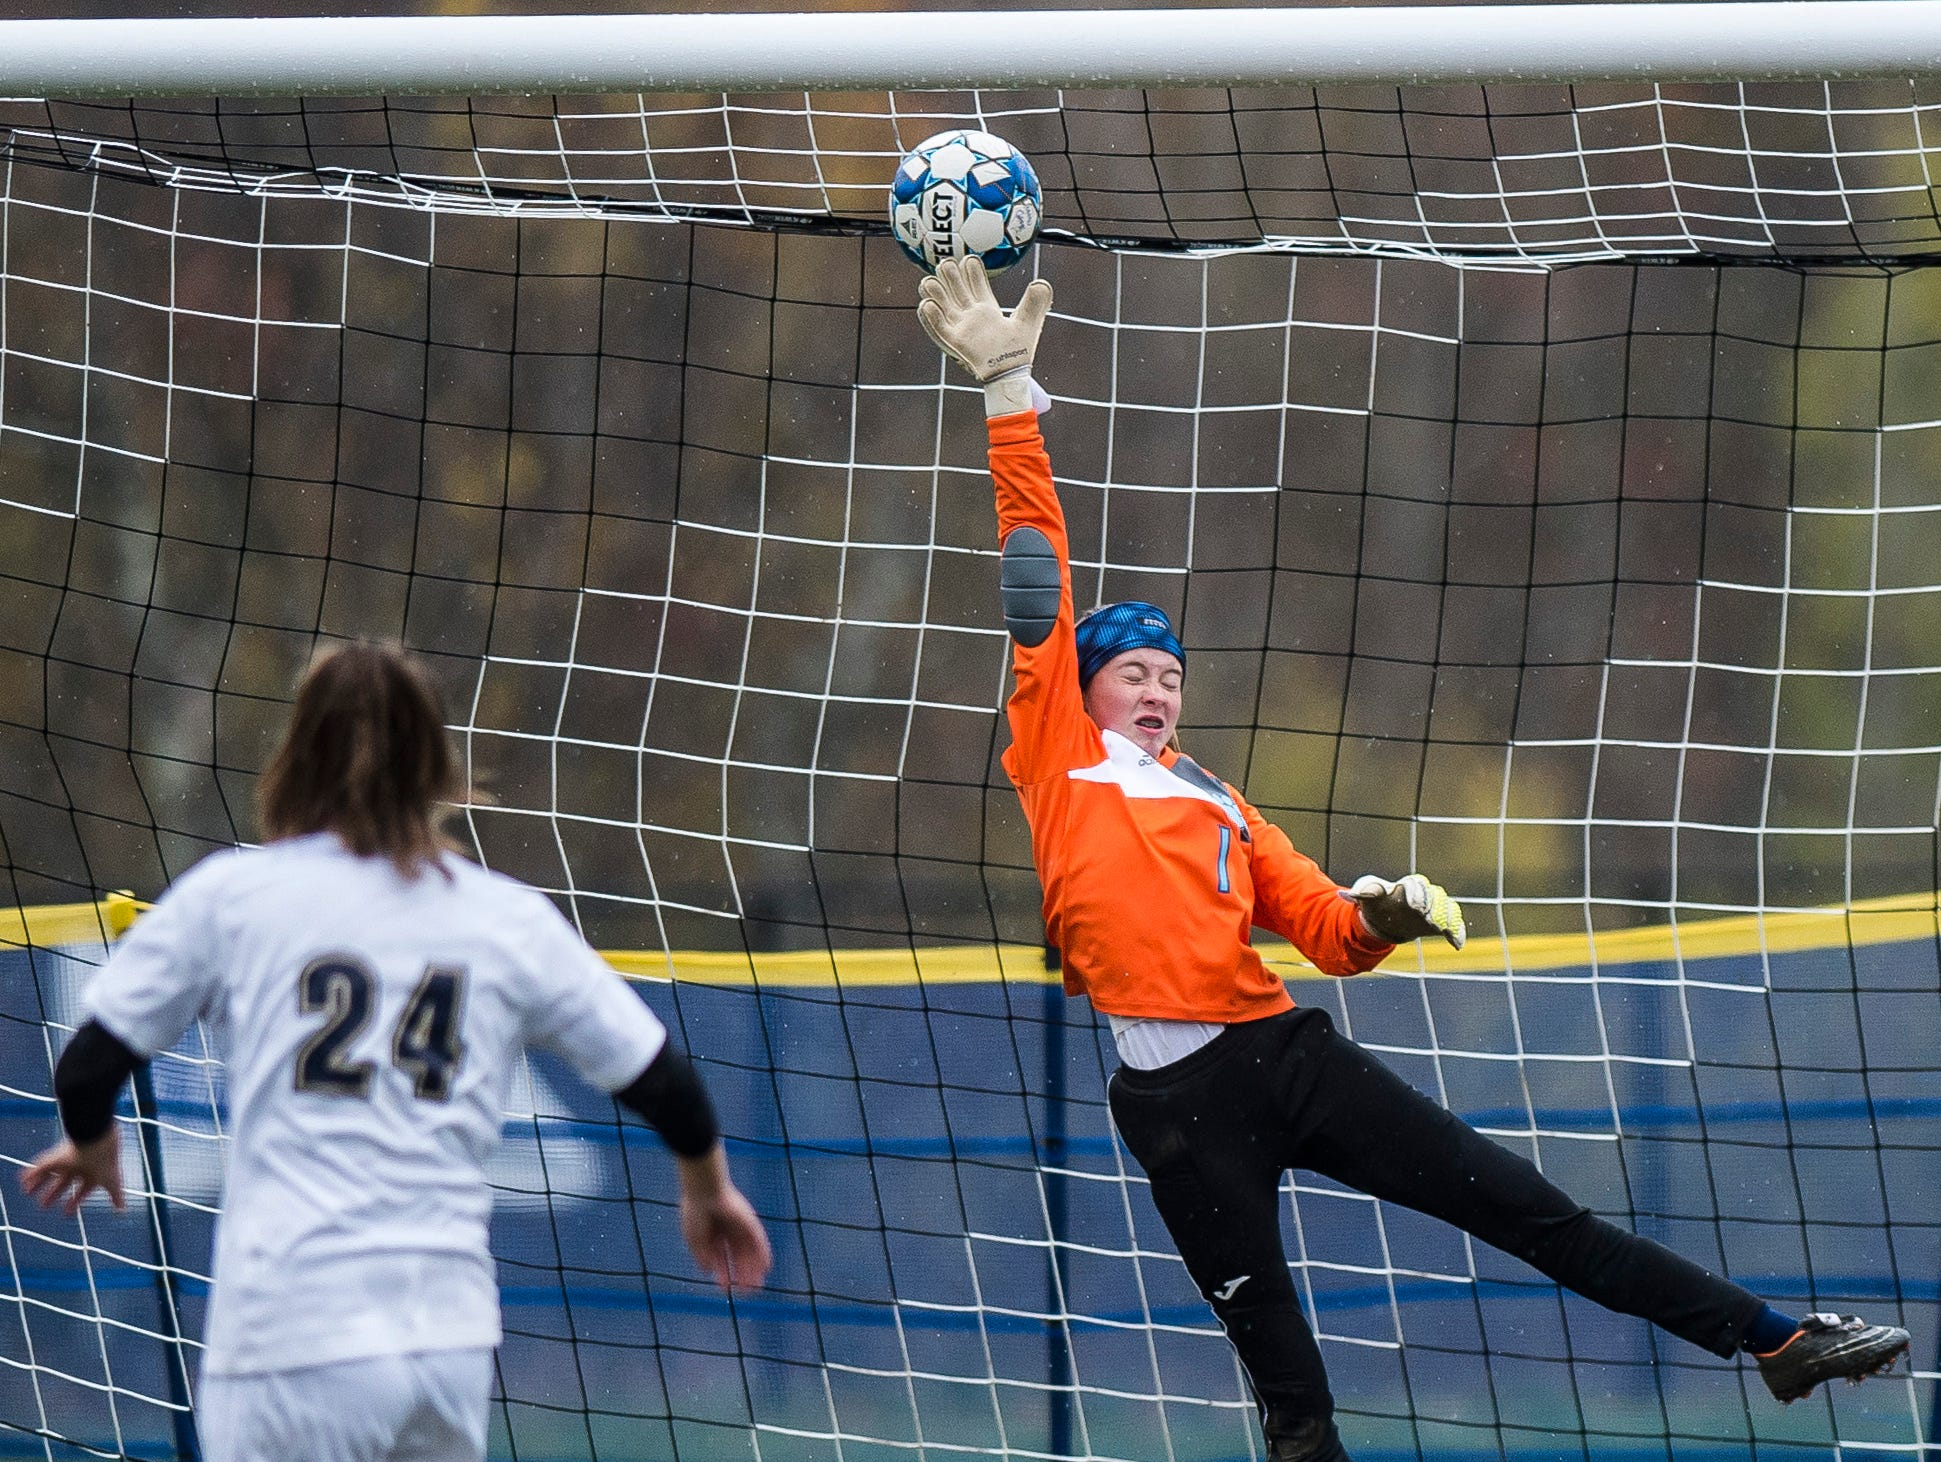 Essex #24 Emma Whitney gets their first penalty kick past MMU goalie Anna Betz during their quarter-final game in Jericho on Saturday, Oct. 27, 2018, that went into double overtime and shootout. Essex took the penalty kick contest to win, 4-1.